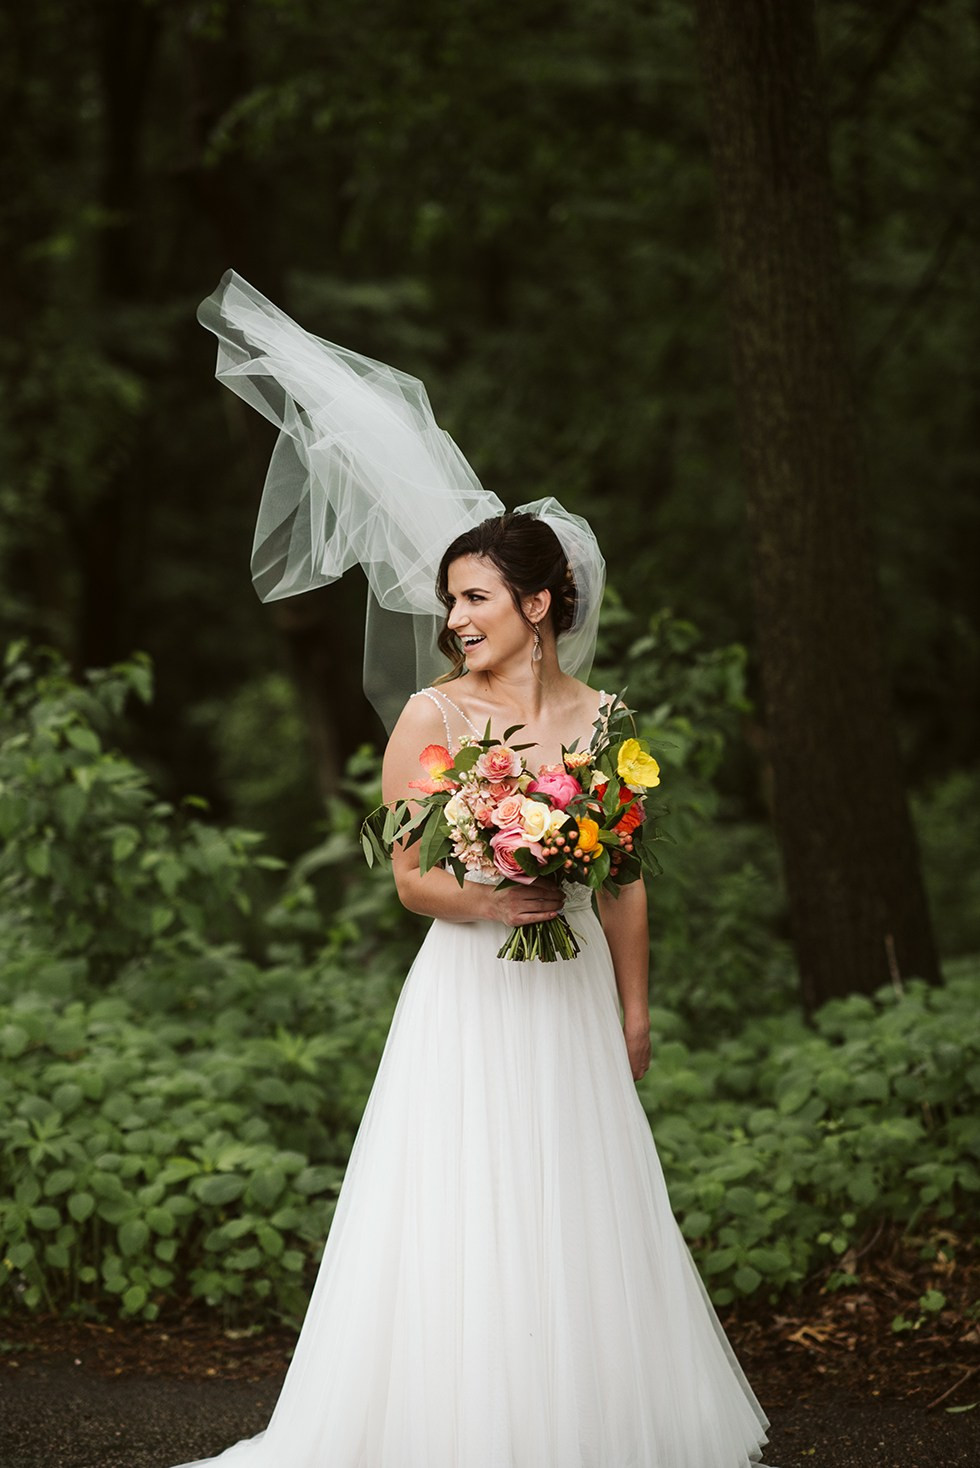 Photo: Amy Carroll Photography Beautifully Balanced Makeup Artistry LLC in conjuction with RefEYEance Makeup & Hair LLC